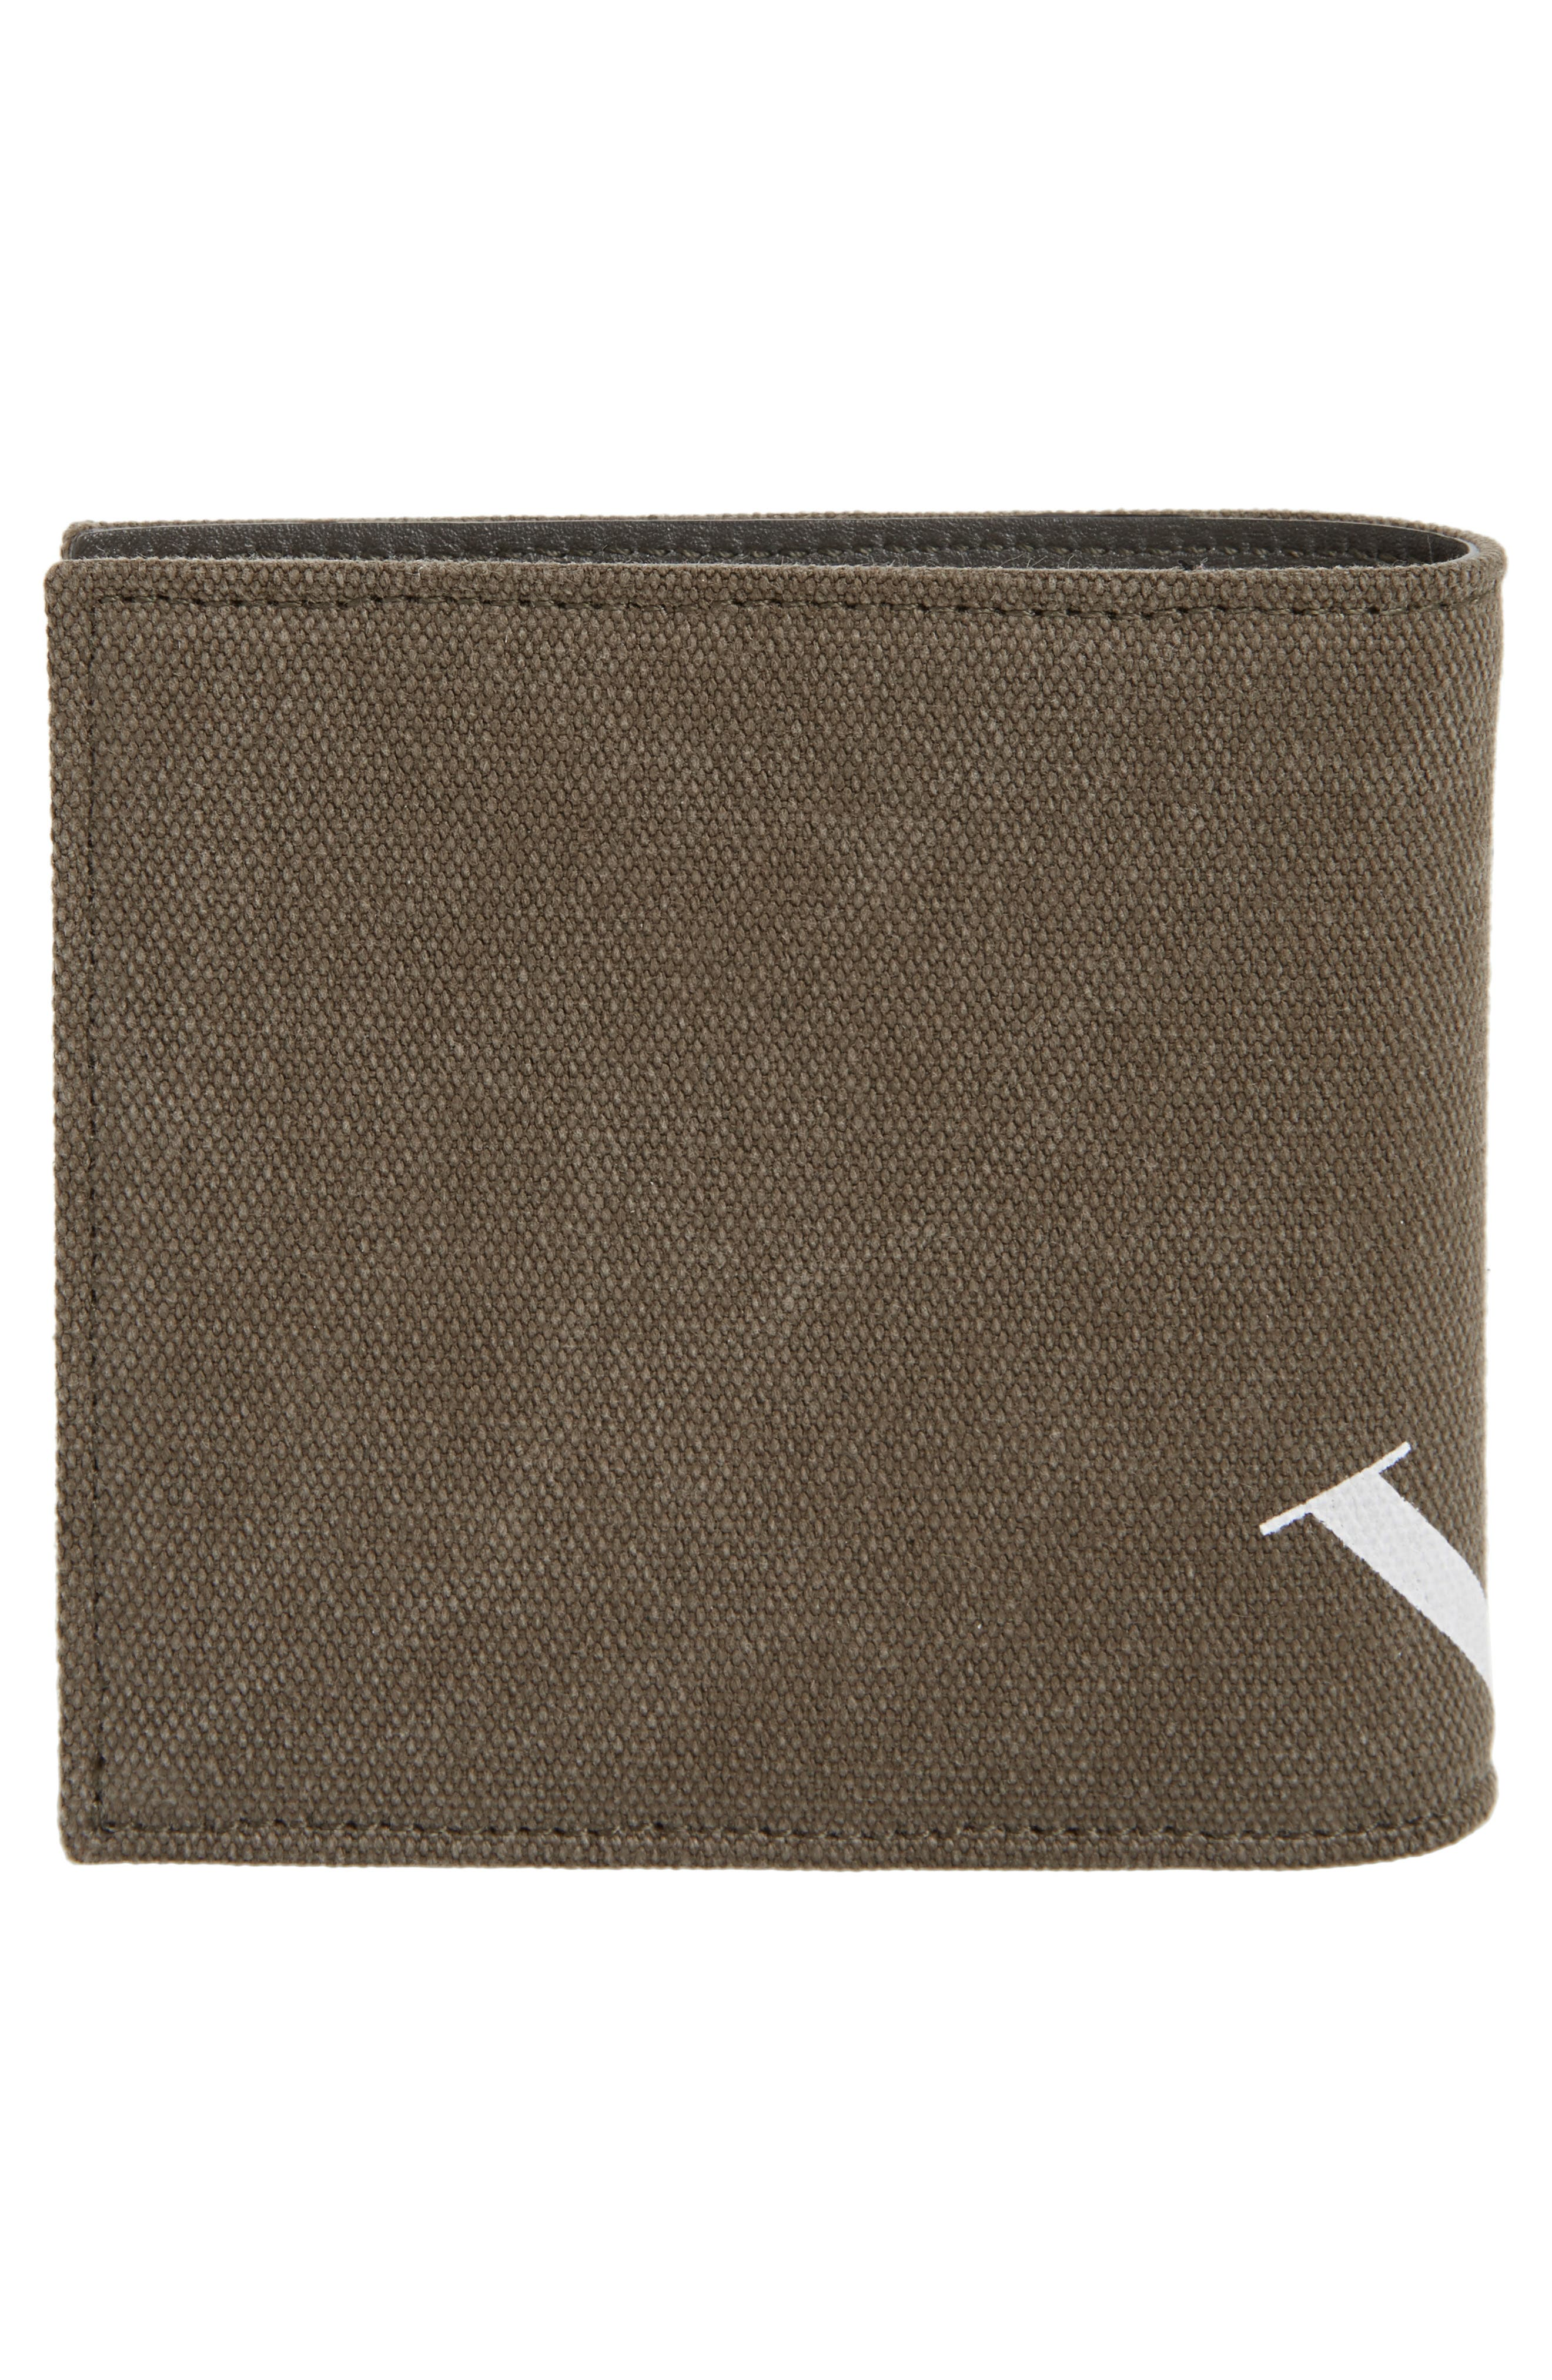 GARAVANI Military Canvas Wallet,                             Alternate thumbnail 3, color,                             L90 Olive